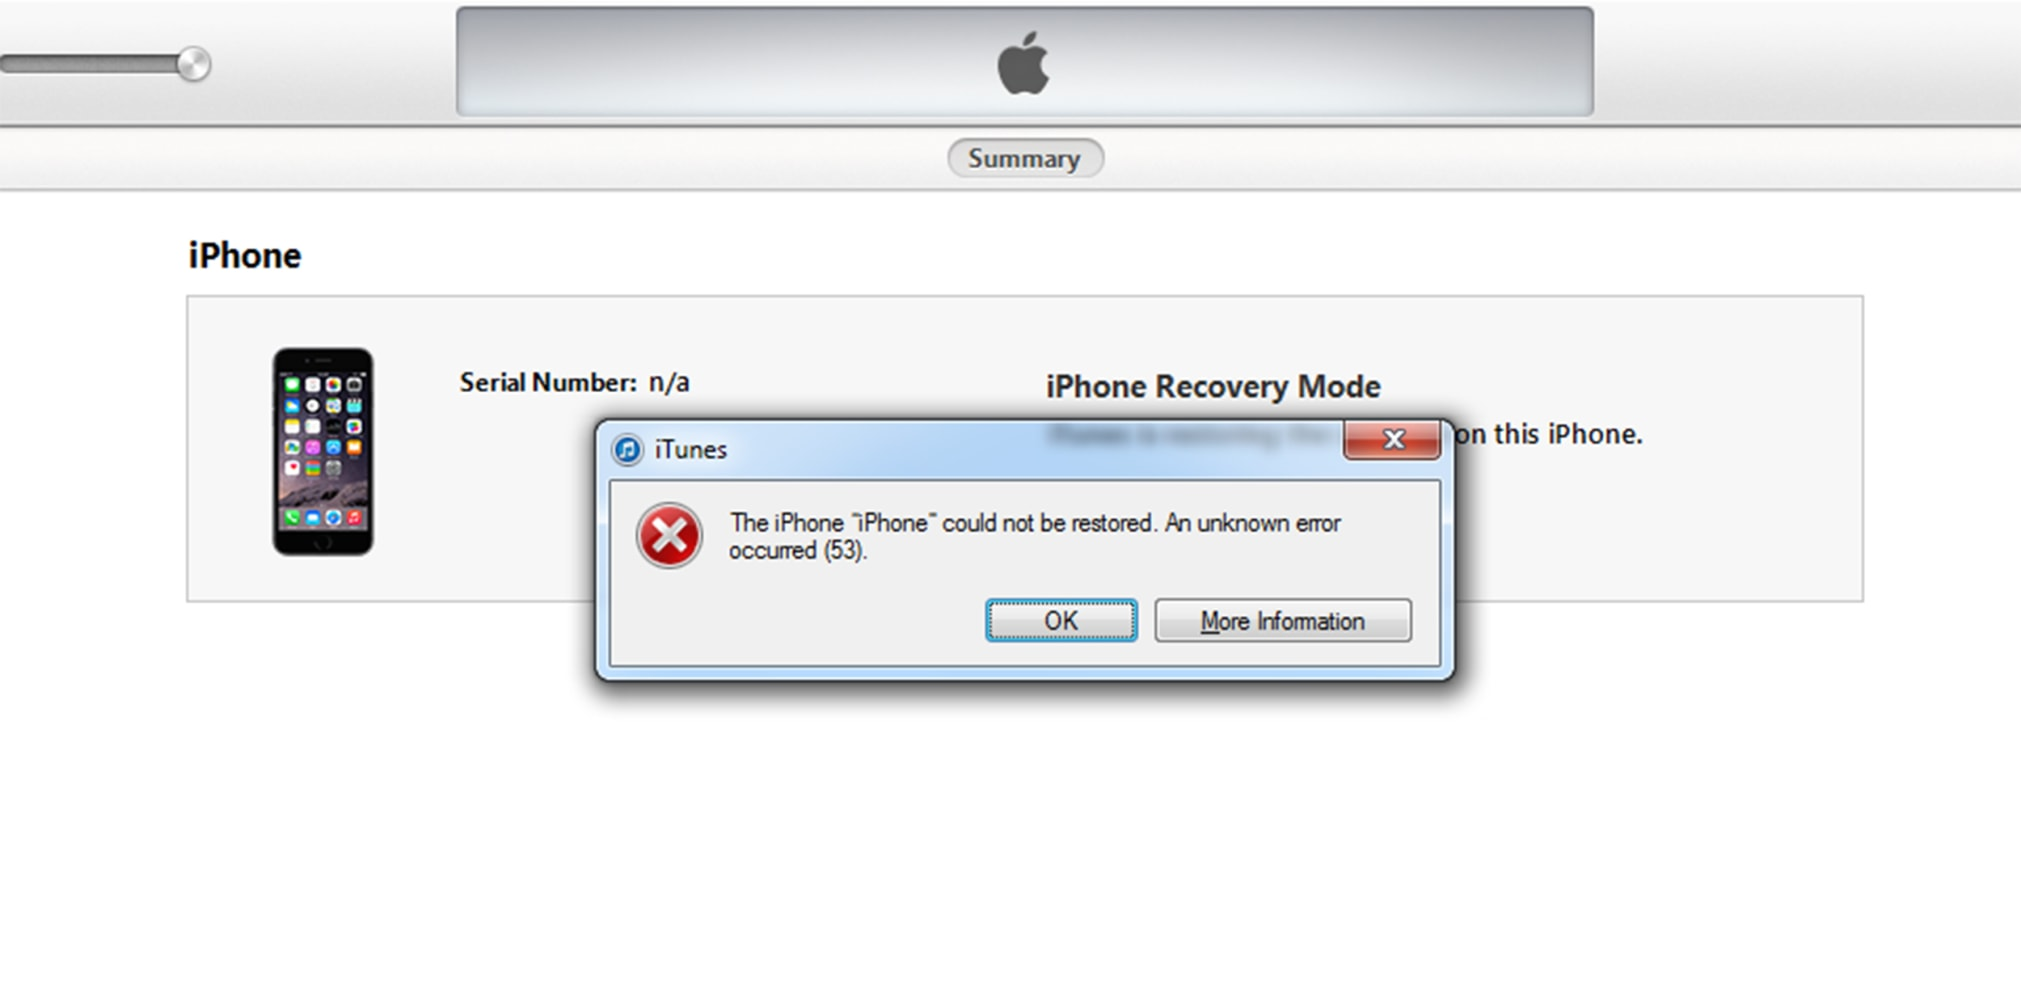 ITunes Is Currently Downloading Software for the iPhone Fix